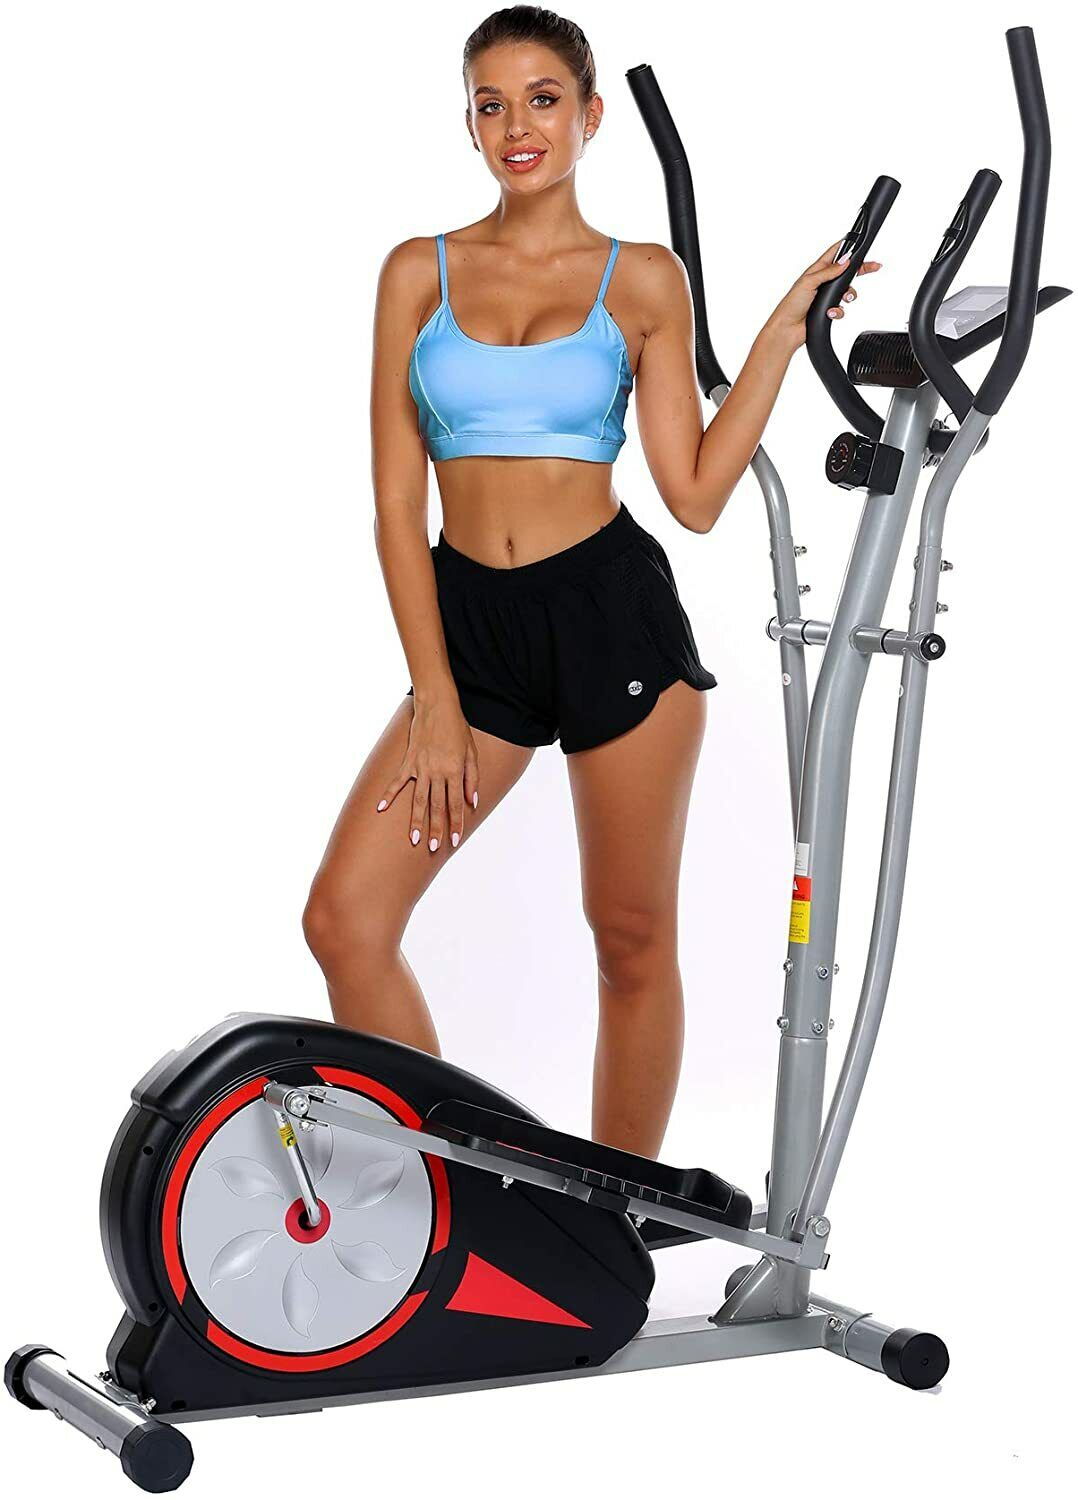 ANCHEER Magnetic Elliptical Exercise Fitness Training Machin